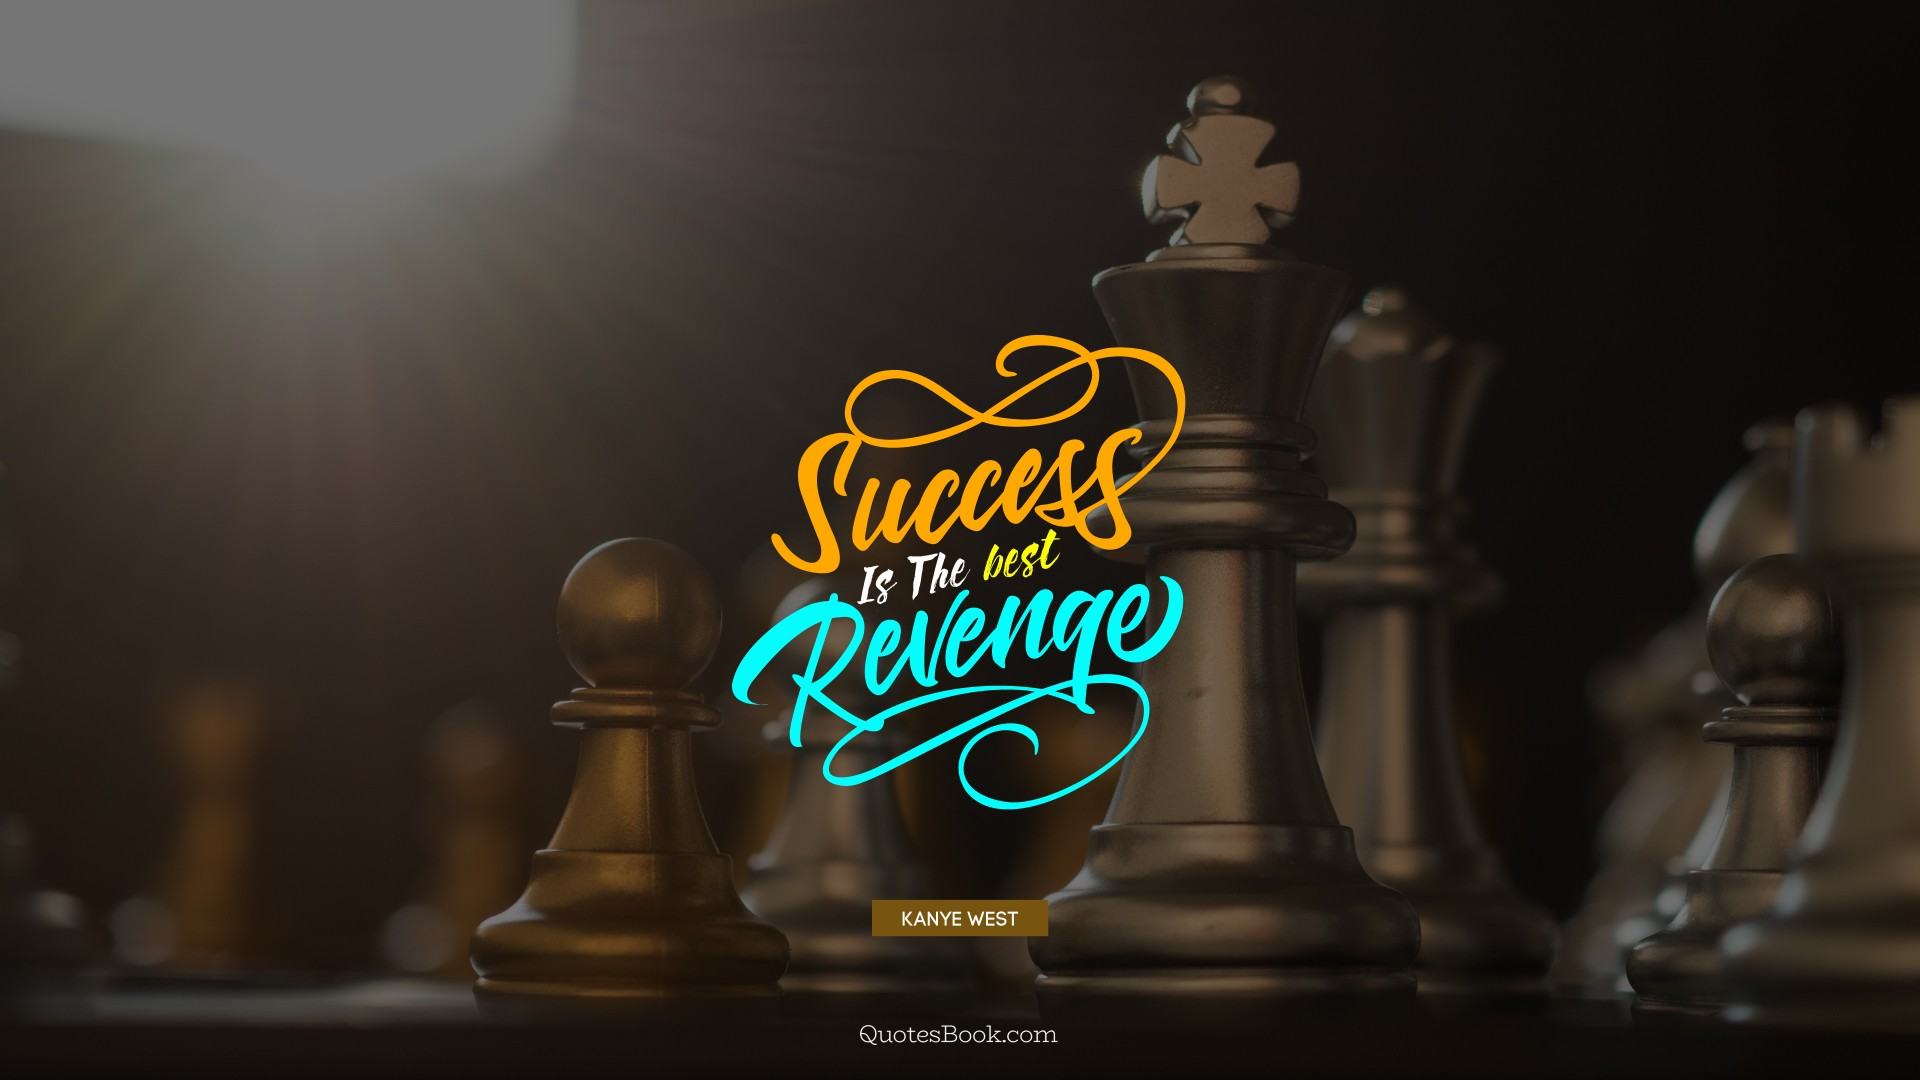 Success is the best revenge Quote by Kanye West